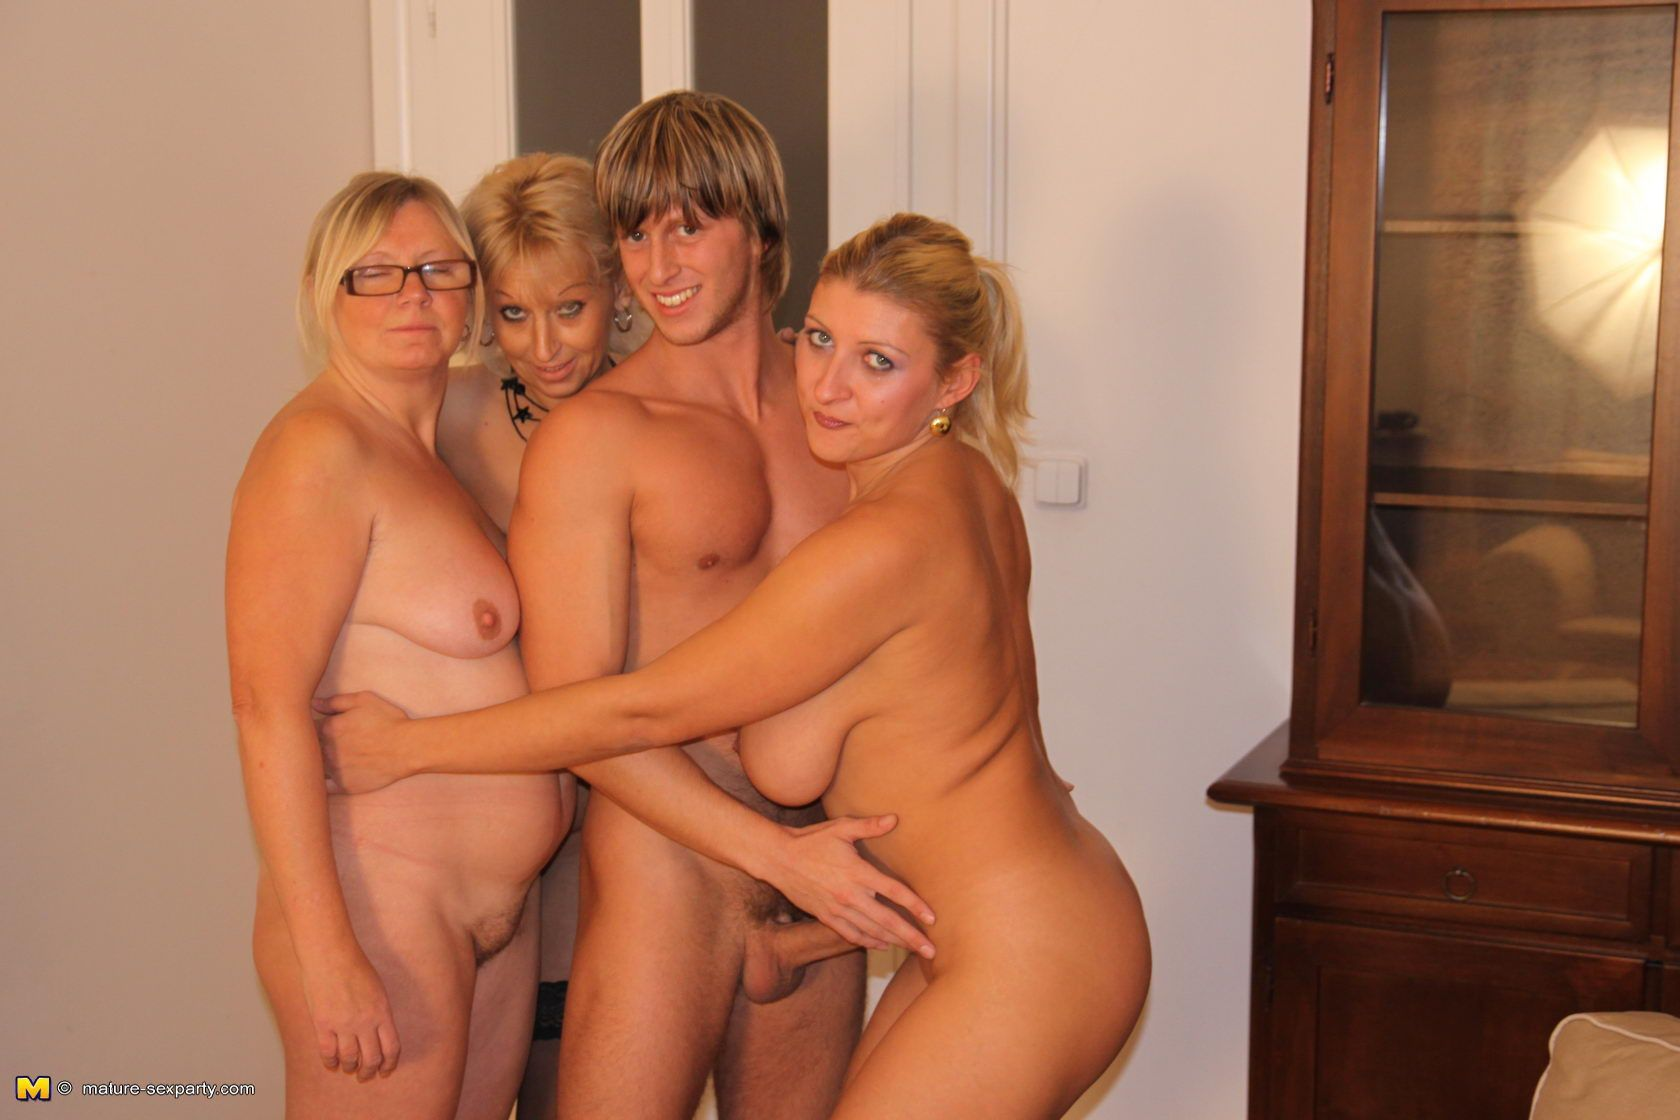 Adult Hardcore Porn Pictures mature nudist parties . adult gallery. comments: 3